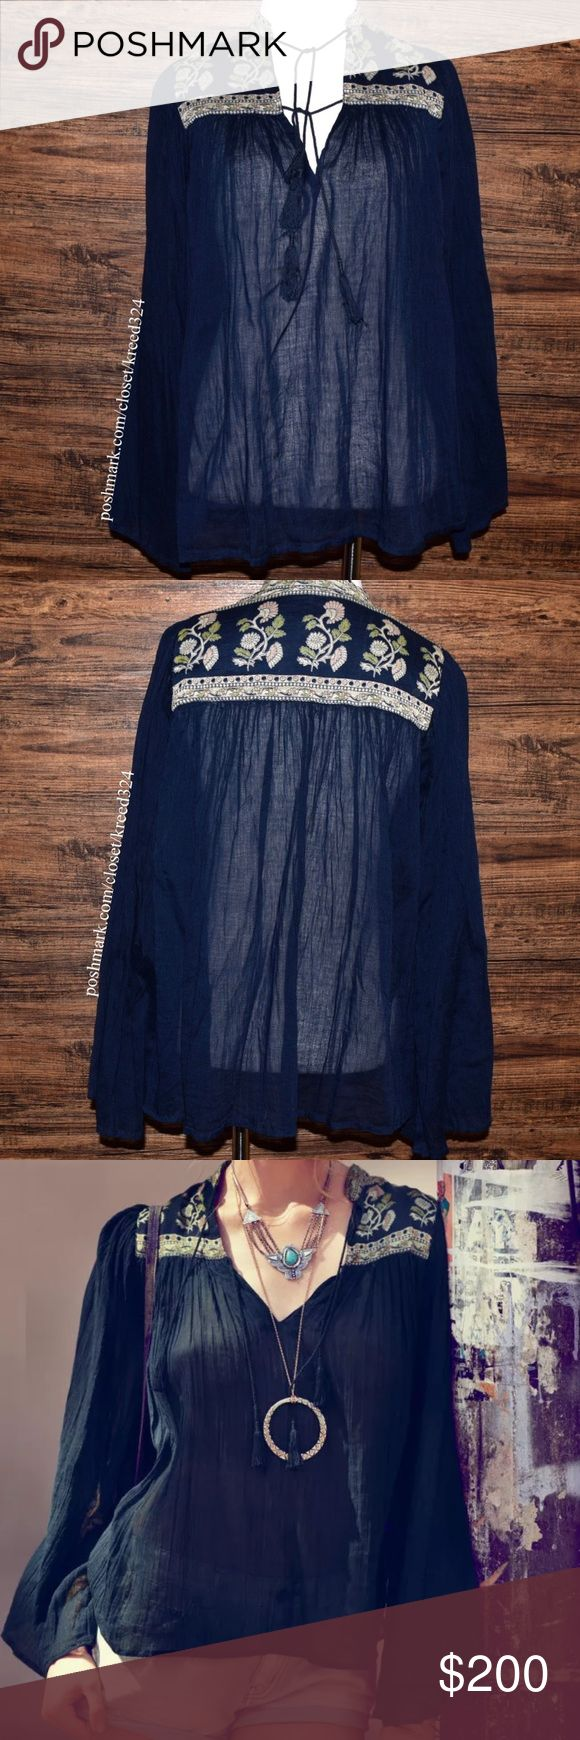 FREE PEOPLE Classic Top Patterned Bohemian Blouse Size XS. Excellent Condition. $128 MSRP + Tax.  • Beautiful & sophisticated, this crinkled bohemian peasant-style blouse features muted floral printed detailing & swingy, loose-fitting silhouette. • Tassel ties at v-neckline.  • Long sleeves. • Unlined.  • FP ONE. • No rips, stains, tears, holes.   • Measurements provided in comment(s) section below  {Southern Girl Fashion - Closet Policy}  ✔️ Same-Business-Day Shipping (10am CT). ✔️ Price…